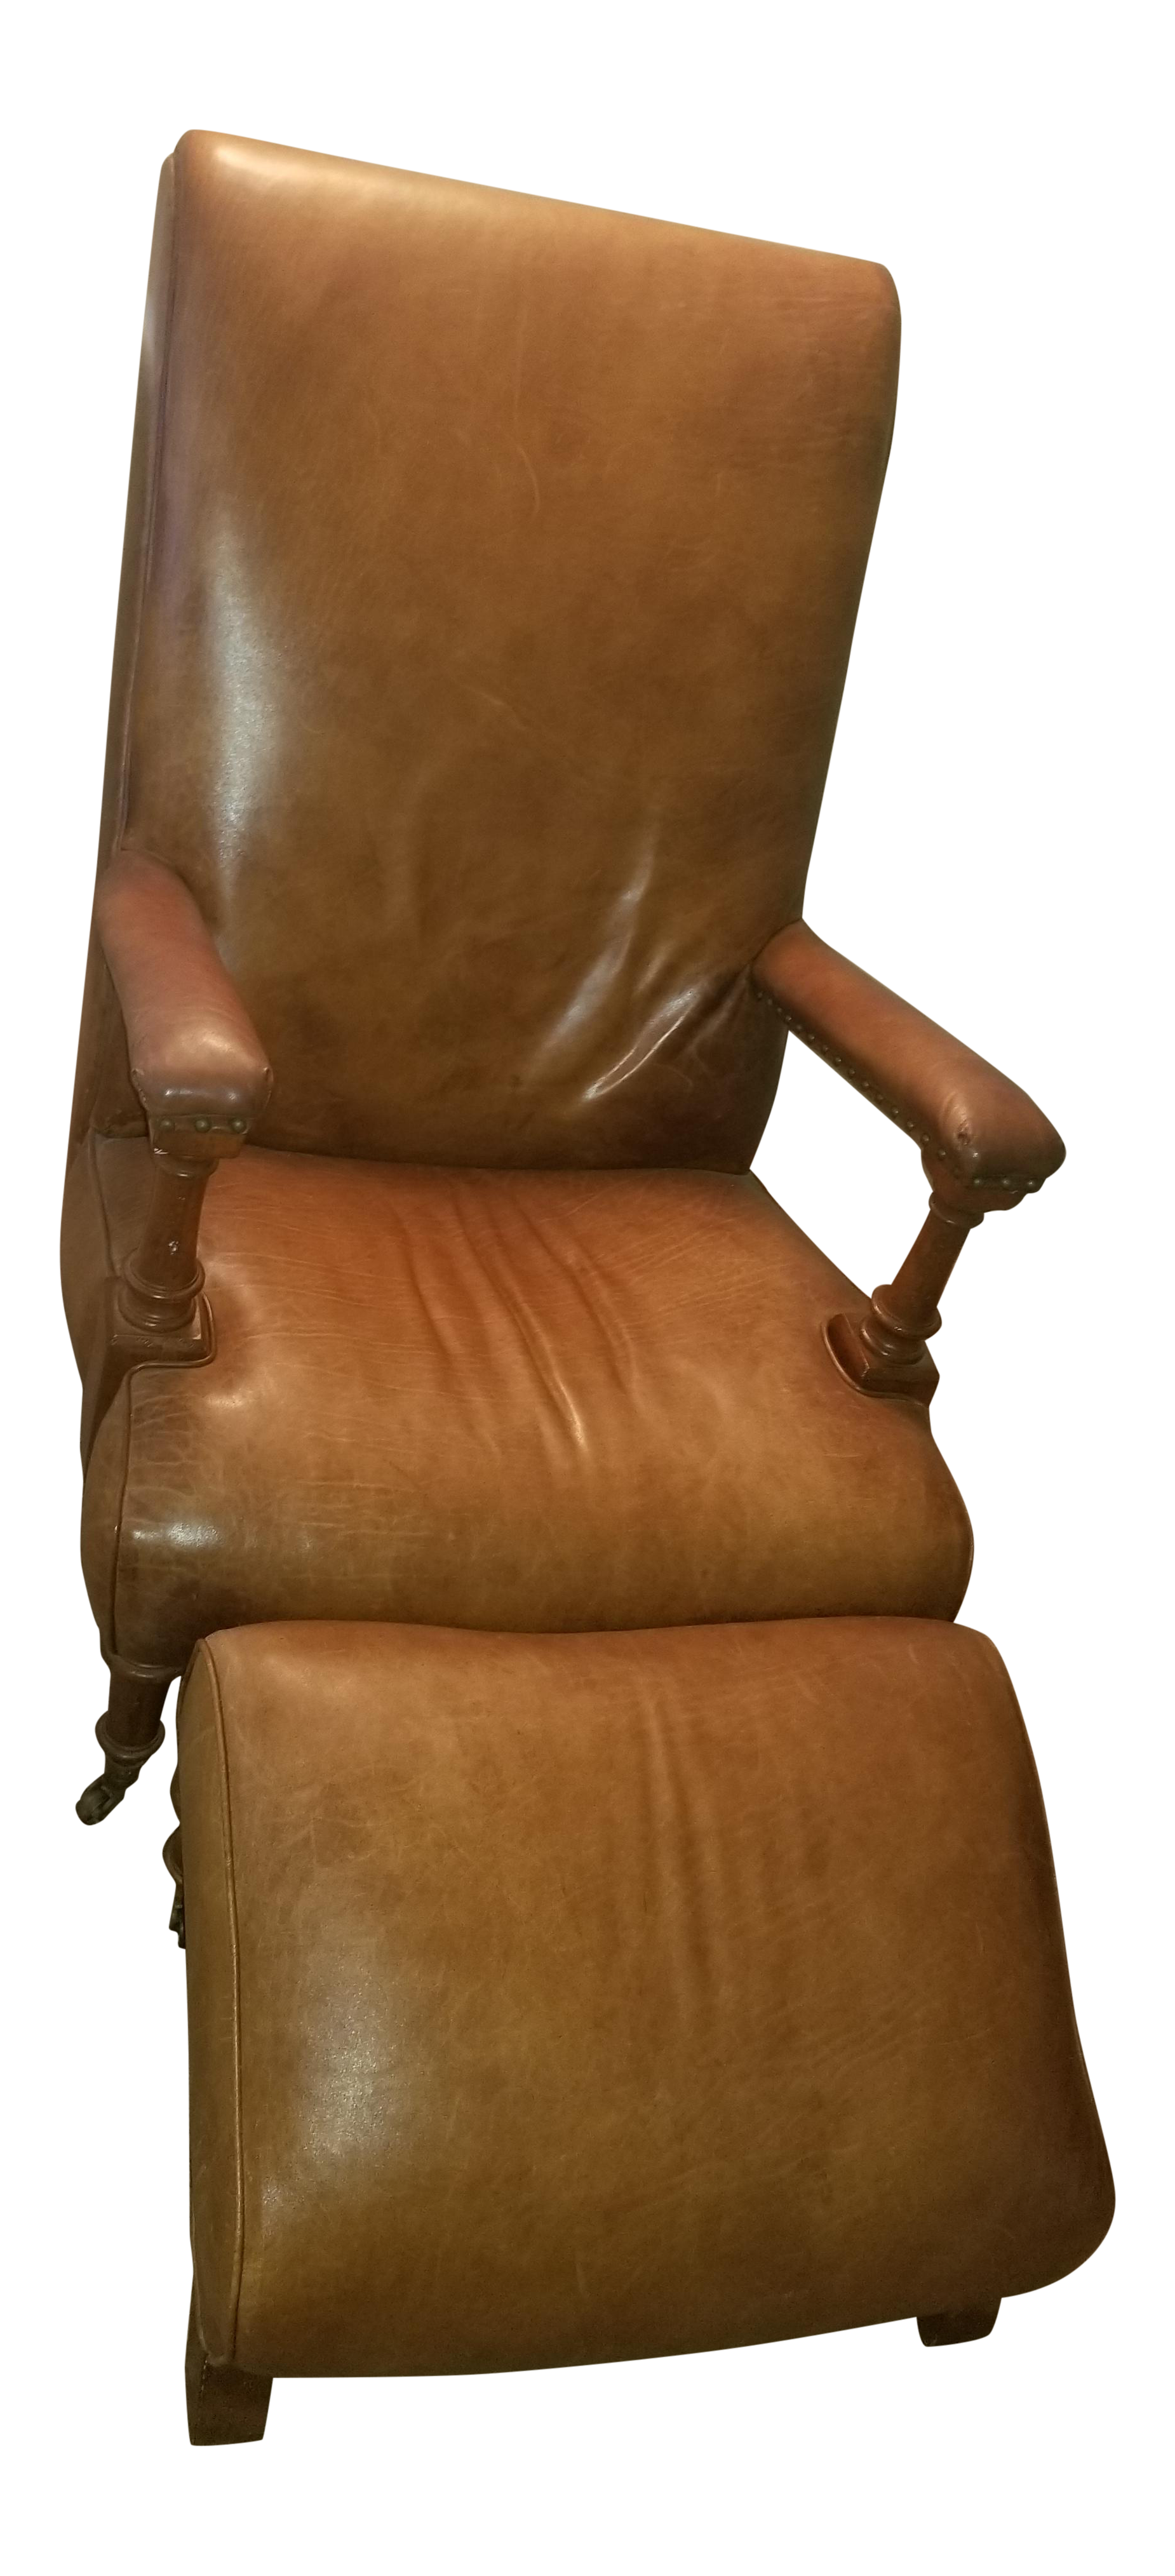 Ralph Lauren Leather Club Chair With Footrest   A Pair